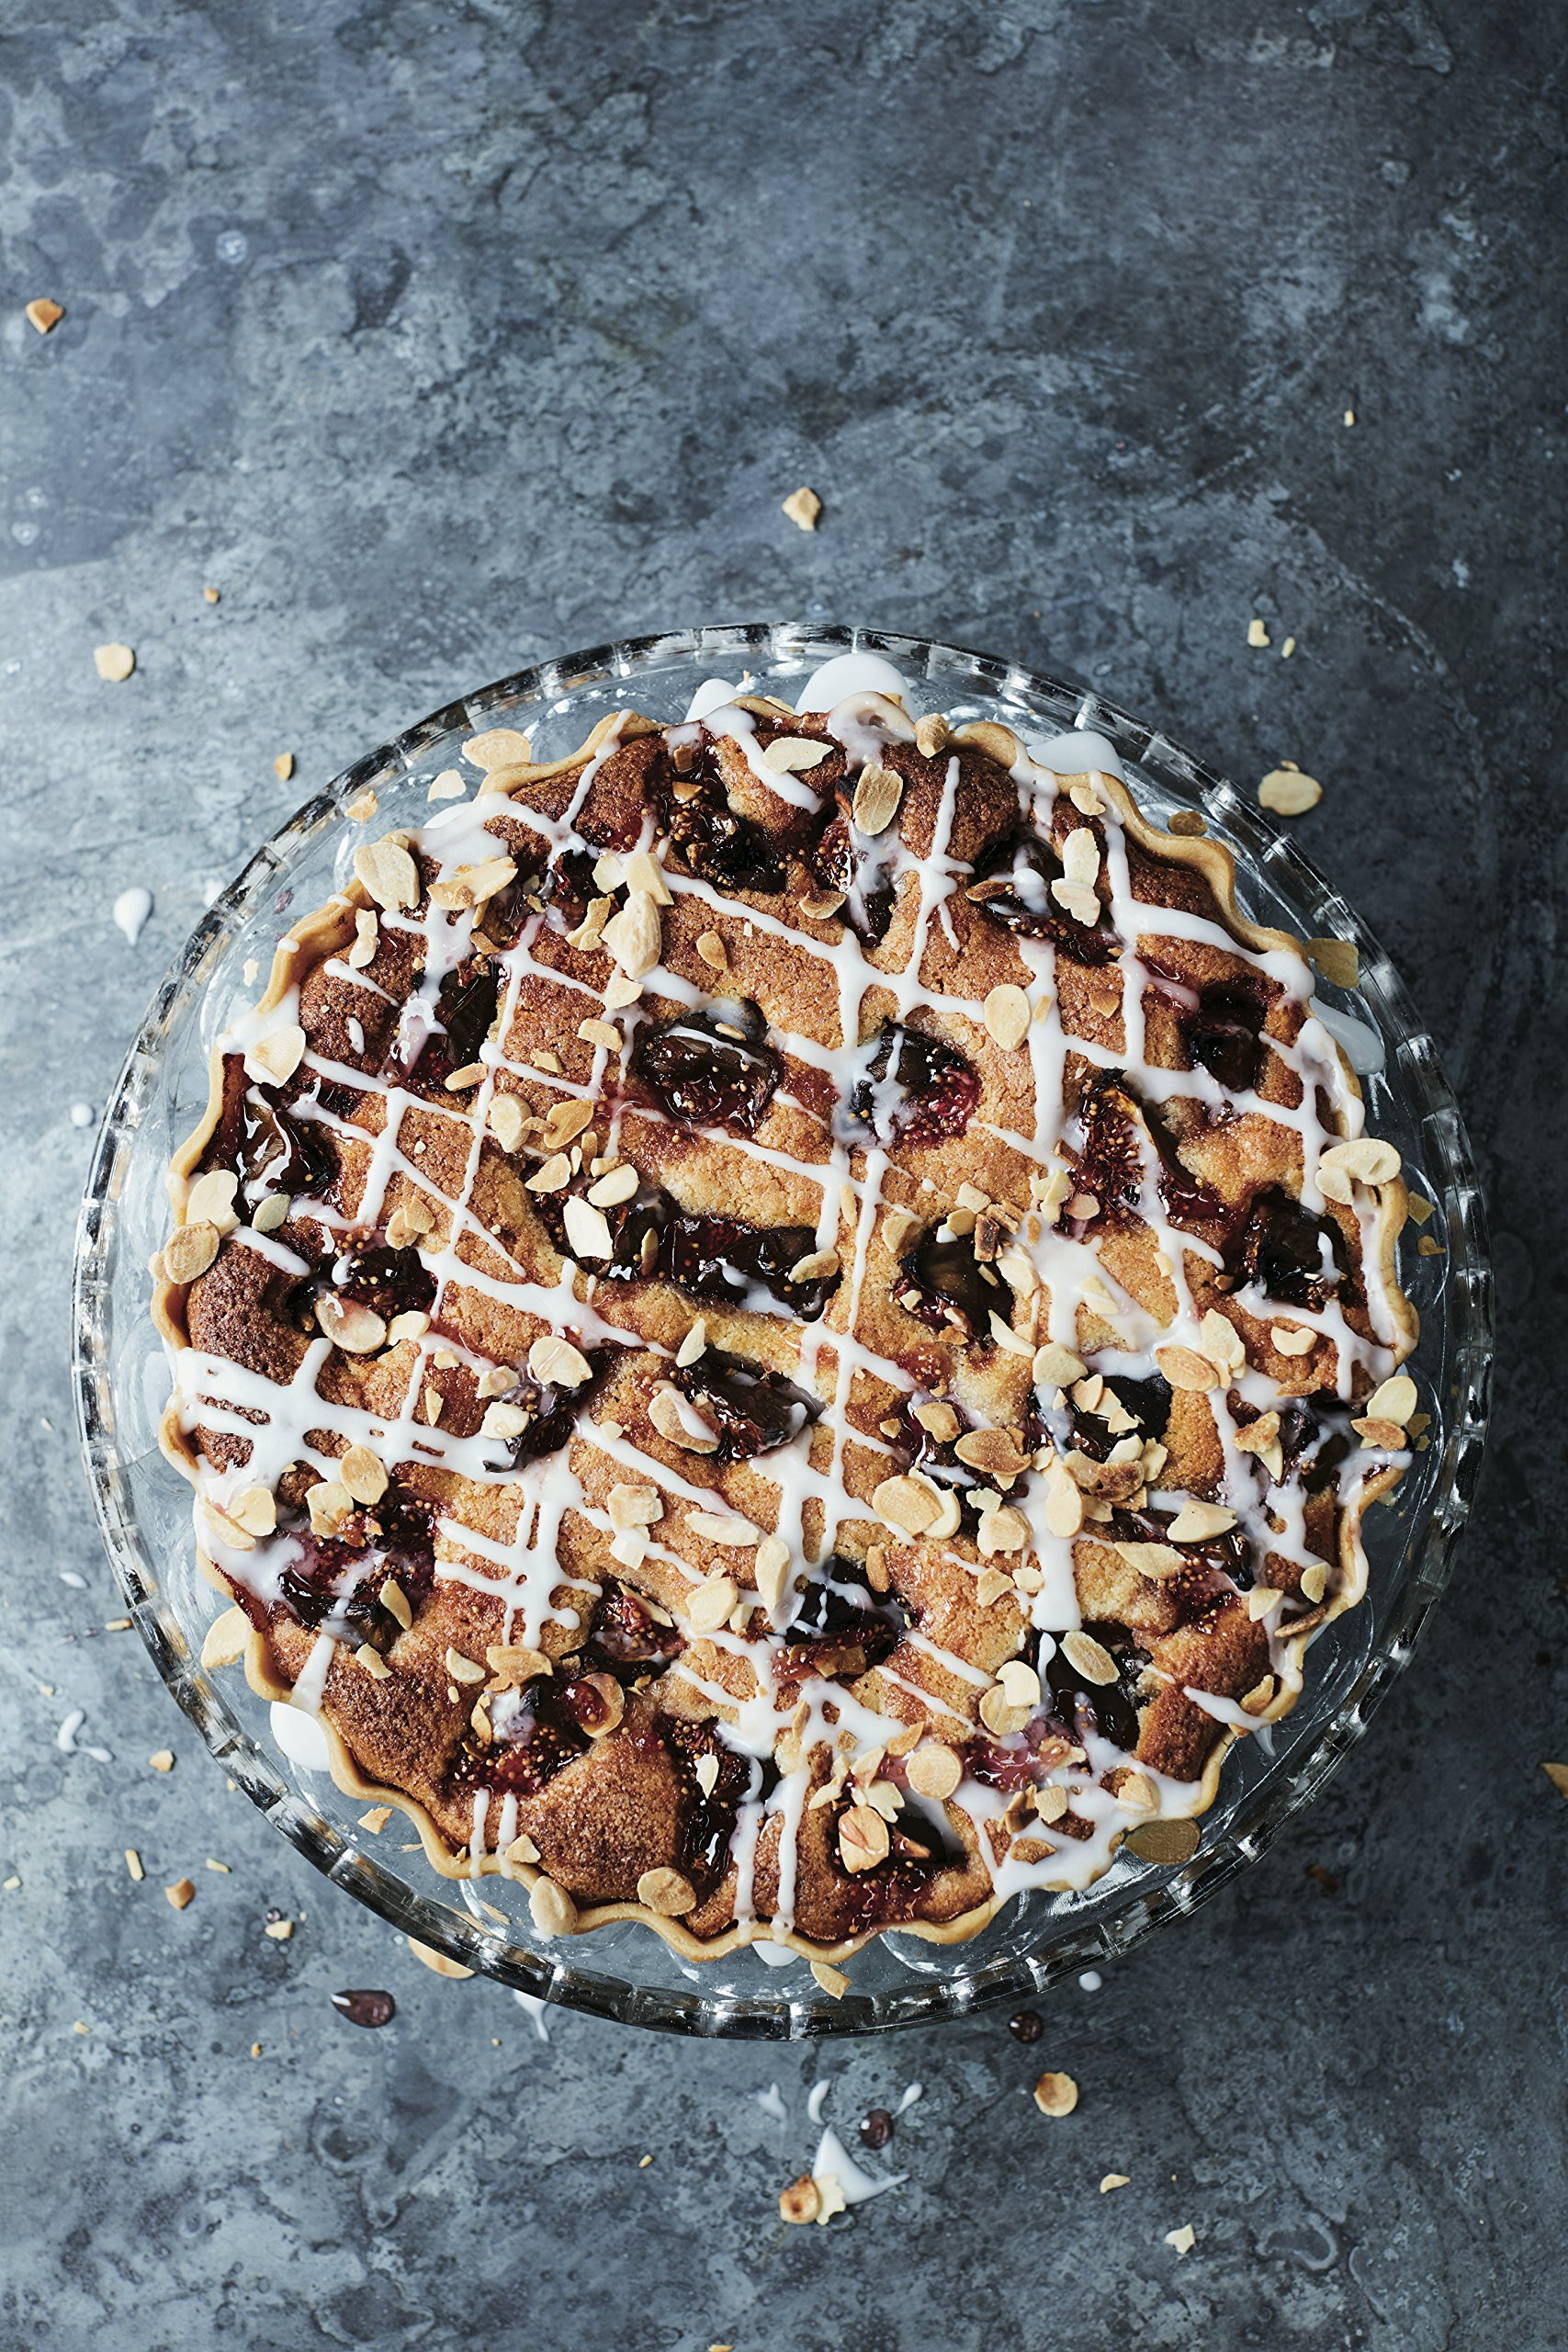 JAMIE OLIVER Tart Pie Tin, 10 Inches, Nonstick by Jamie Oliver (Image #3)